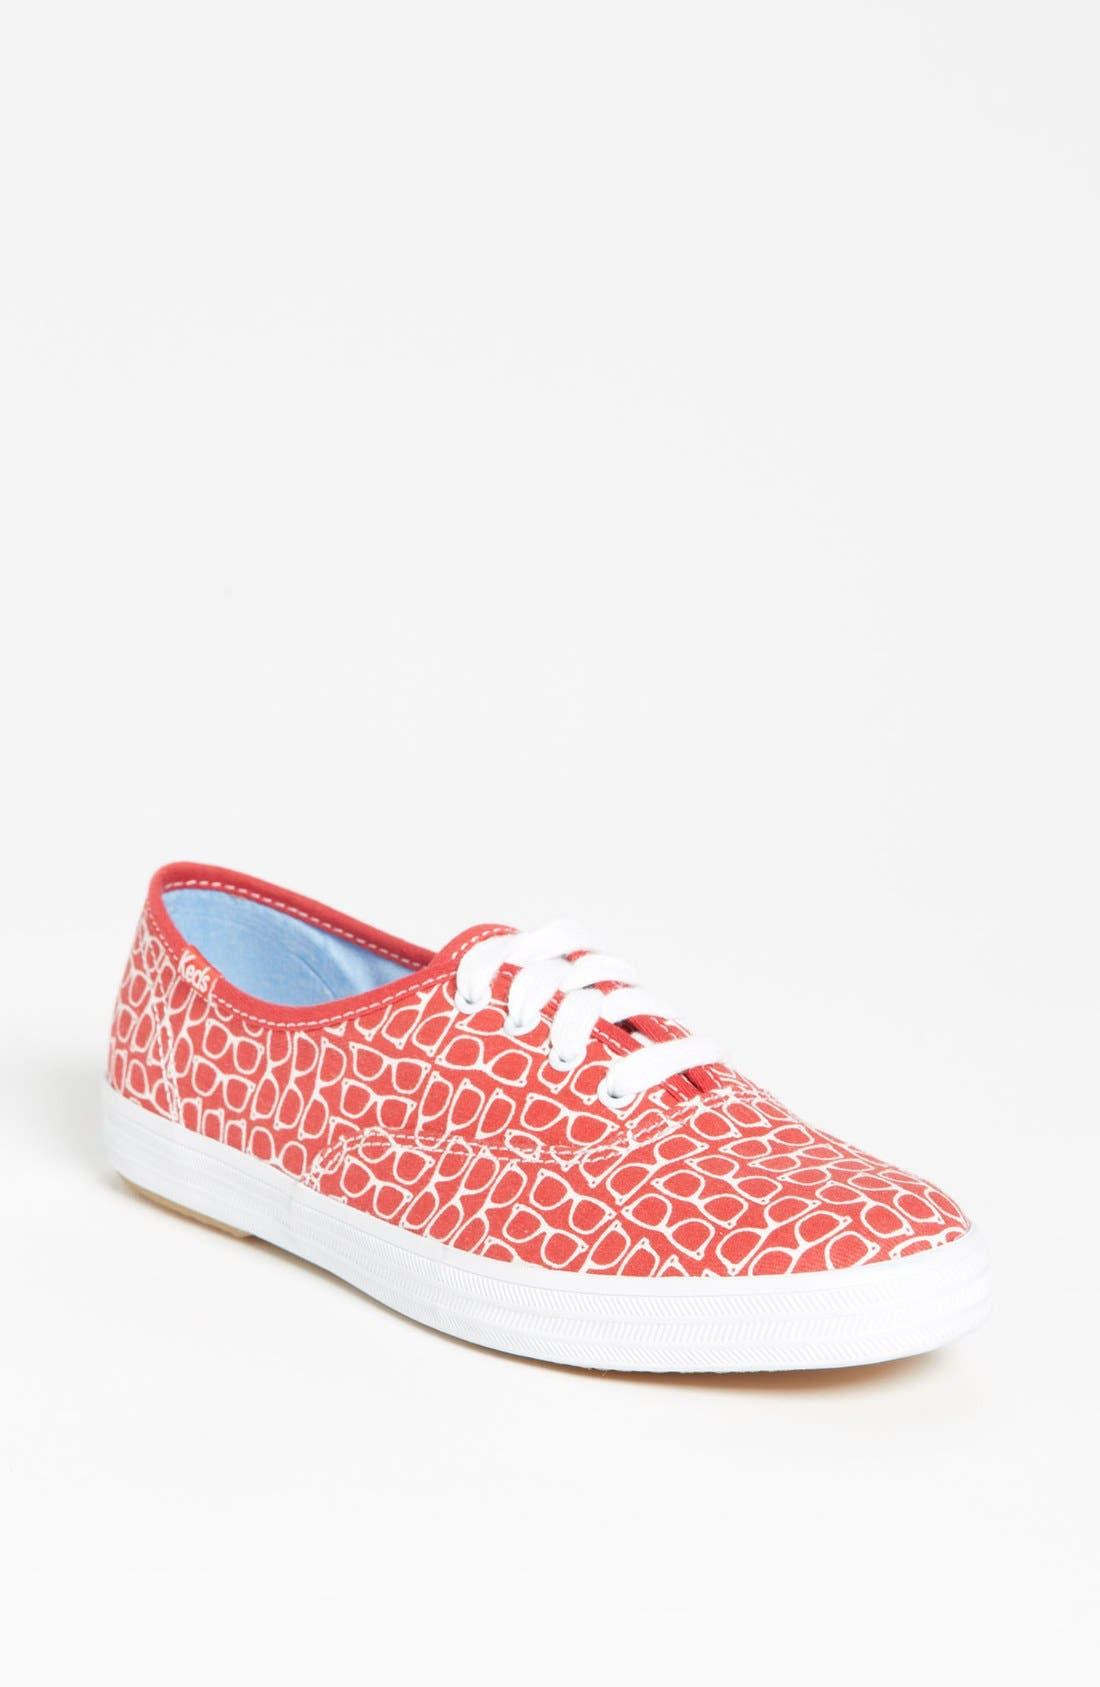 Alternate Image 1 Selected - Keds® Taylor Swift Champion Sneaker (Limited Edition) (Nordstrom Exclusive)